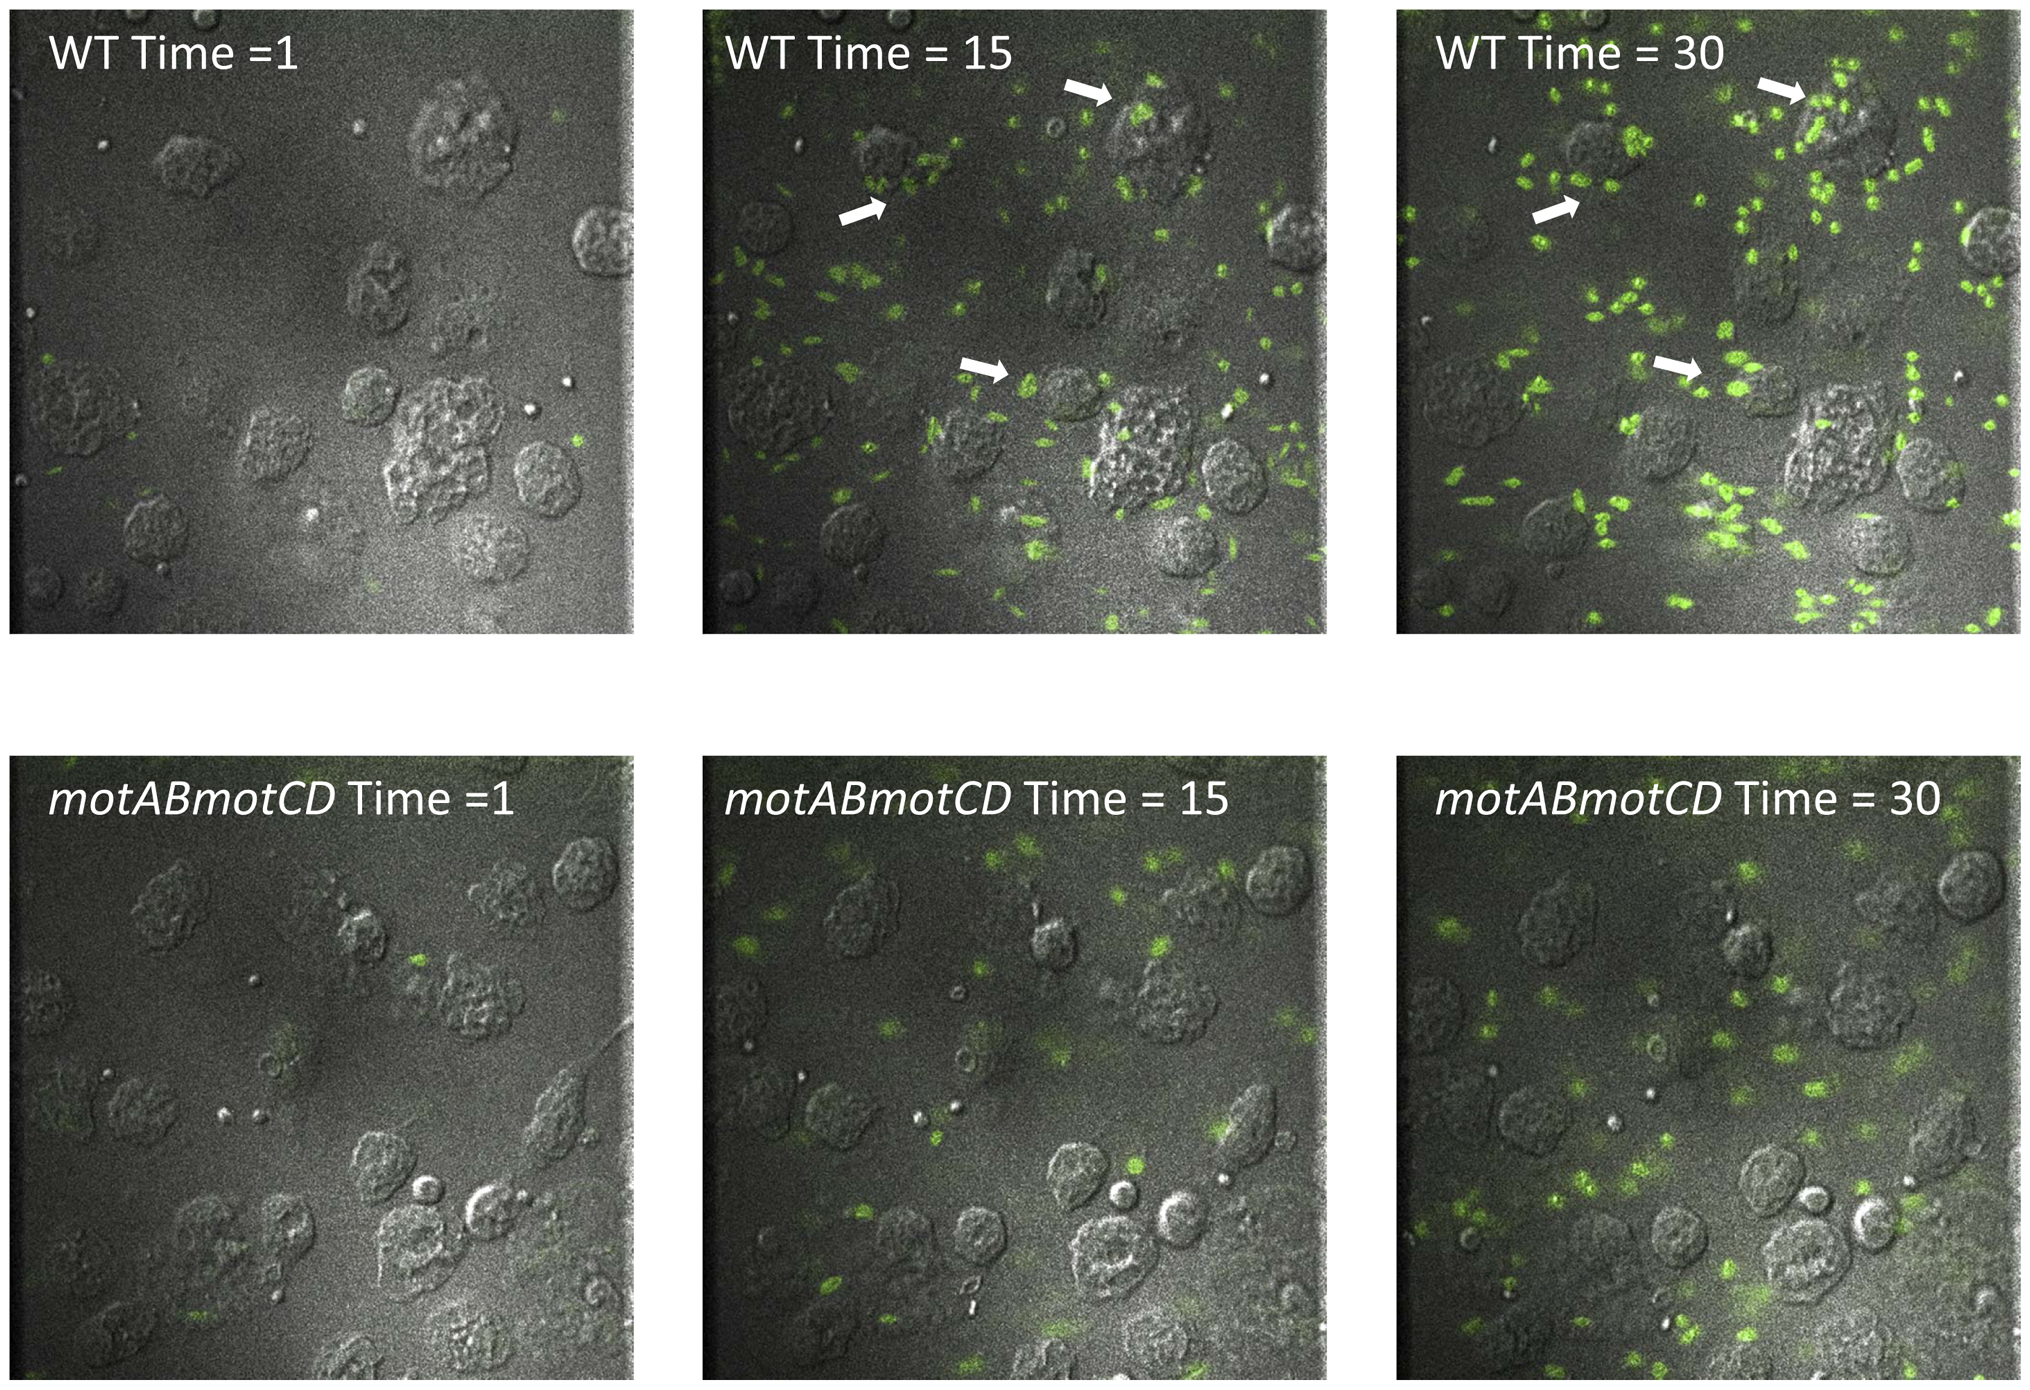 Live imaging of murine peritoneal macrophage interactions with PA14 WT or <i>motABmotCD</i> bacteria <i>in vitro</i>.